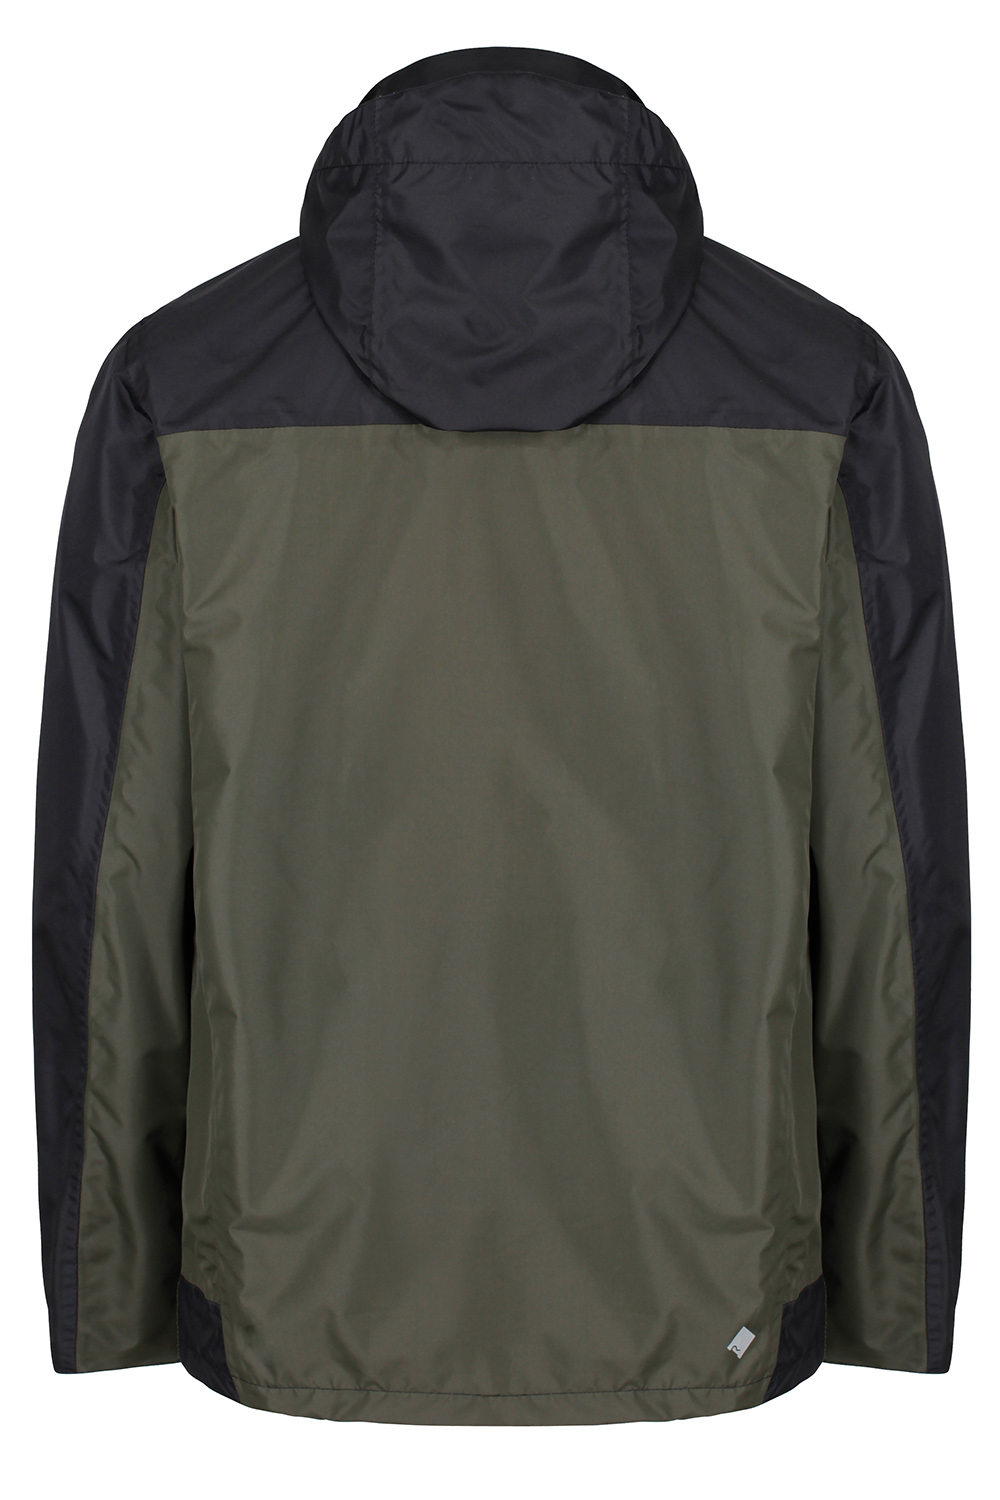 Regatta-Mens-Calderdale-II-Jacket-Waterproof-Breathable-Isotex-5000-Hooded-Coat thumbnail 27